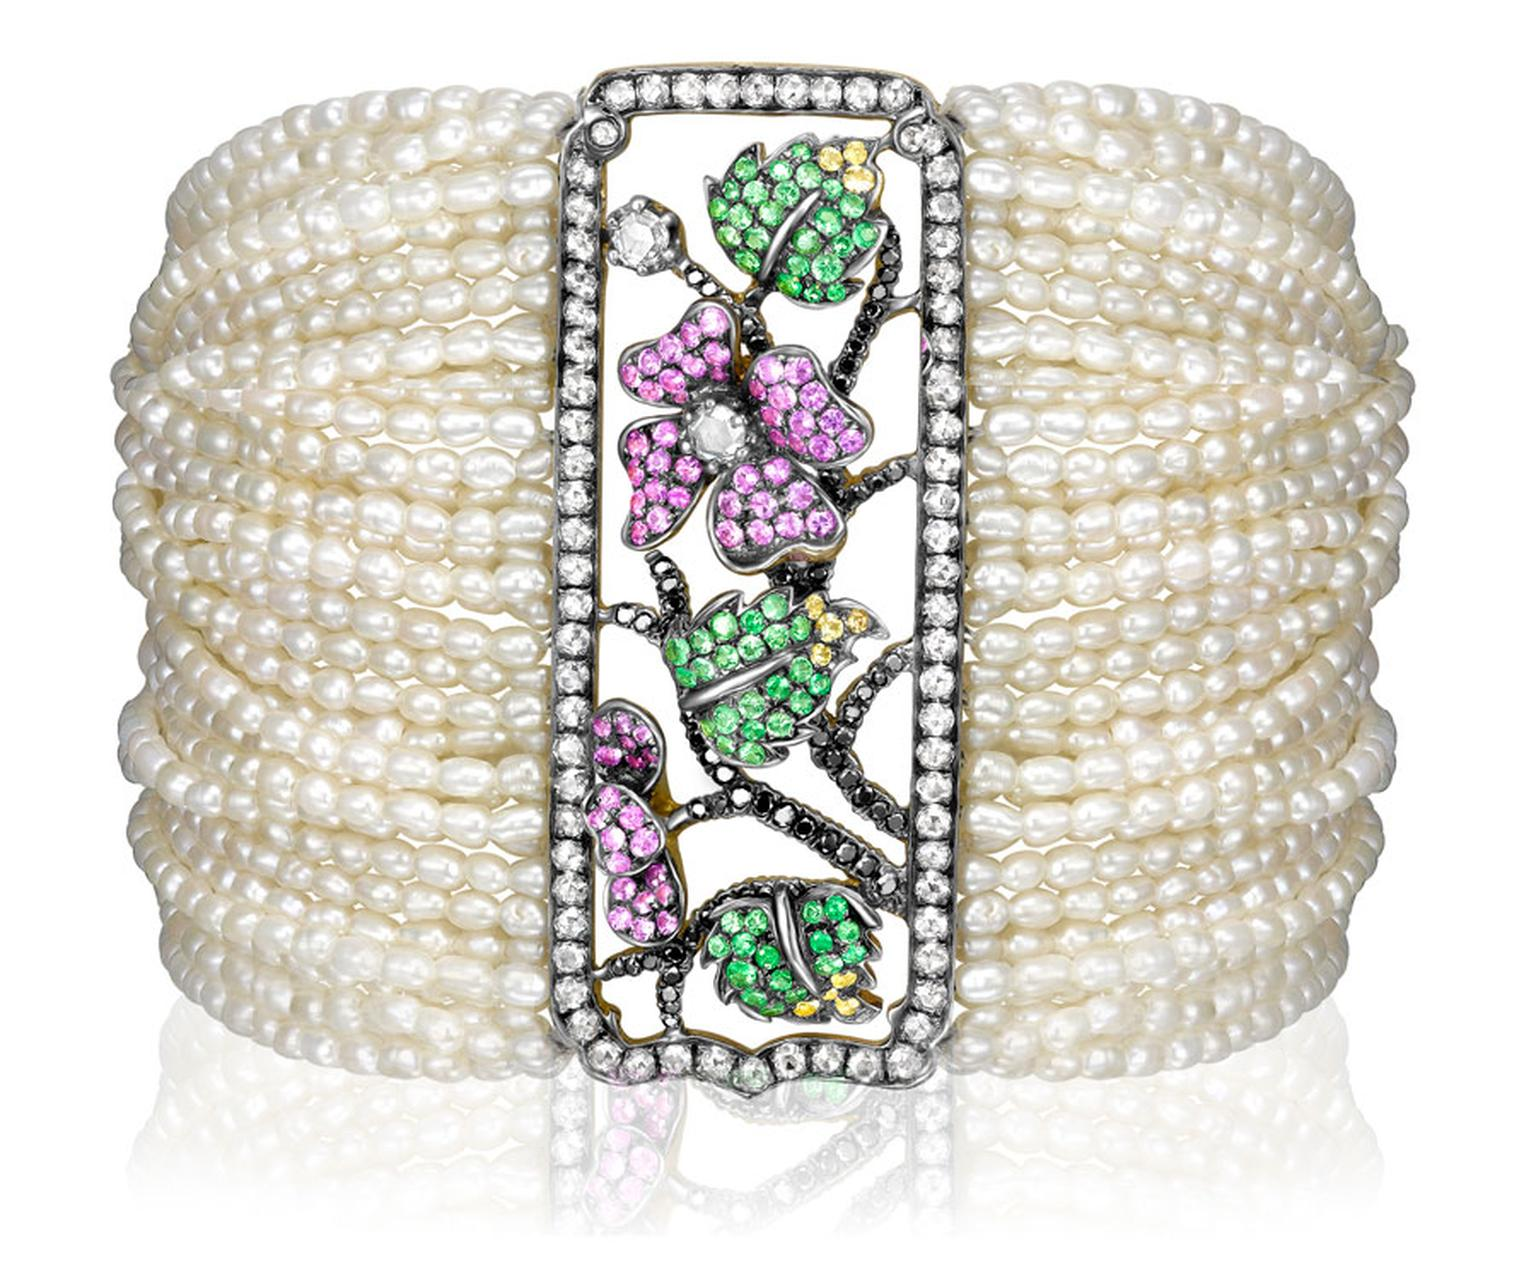 18ct-white-gold,-diamond,-tsavorite,sapphie-Manchurian-Garden-bracelet-by-Yewn-for-Annoushka-.jpg